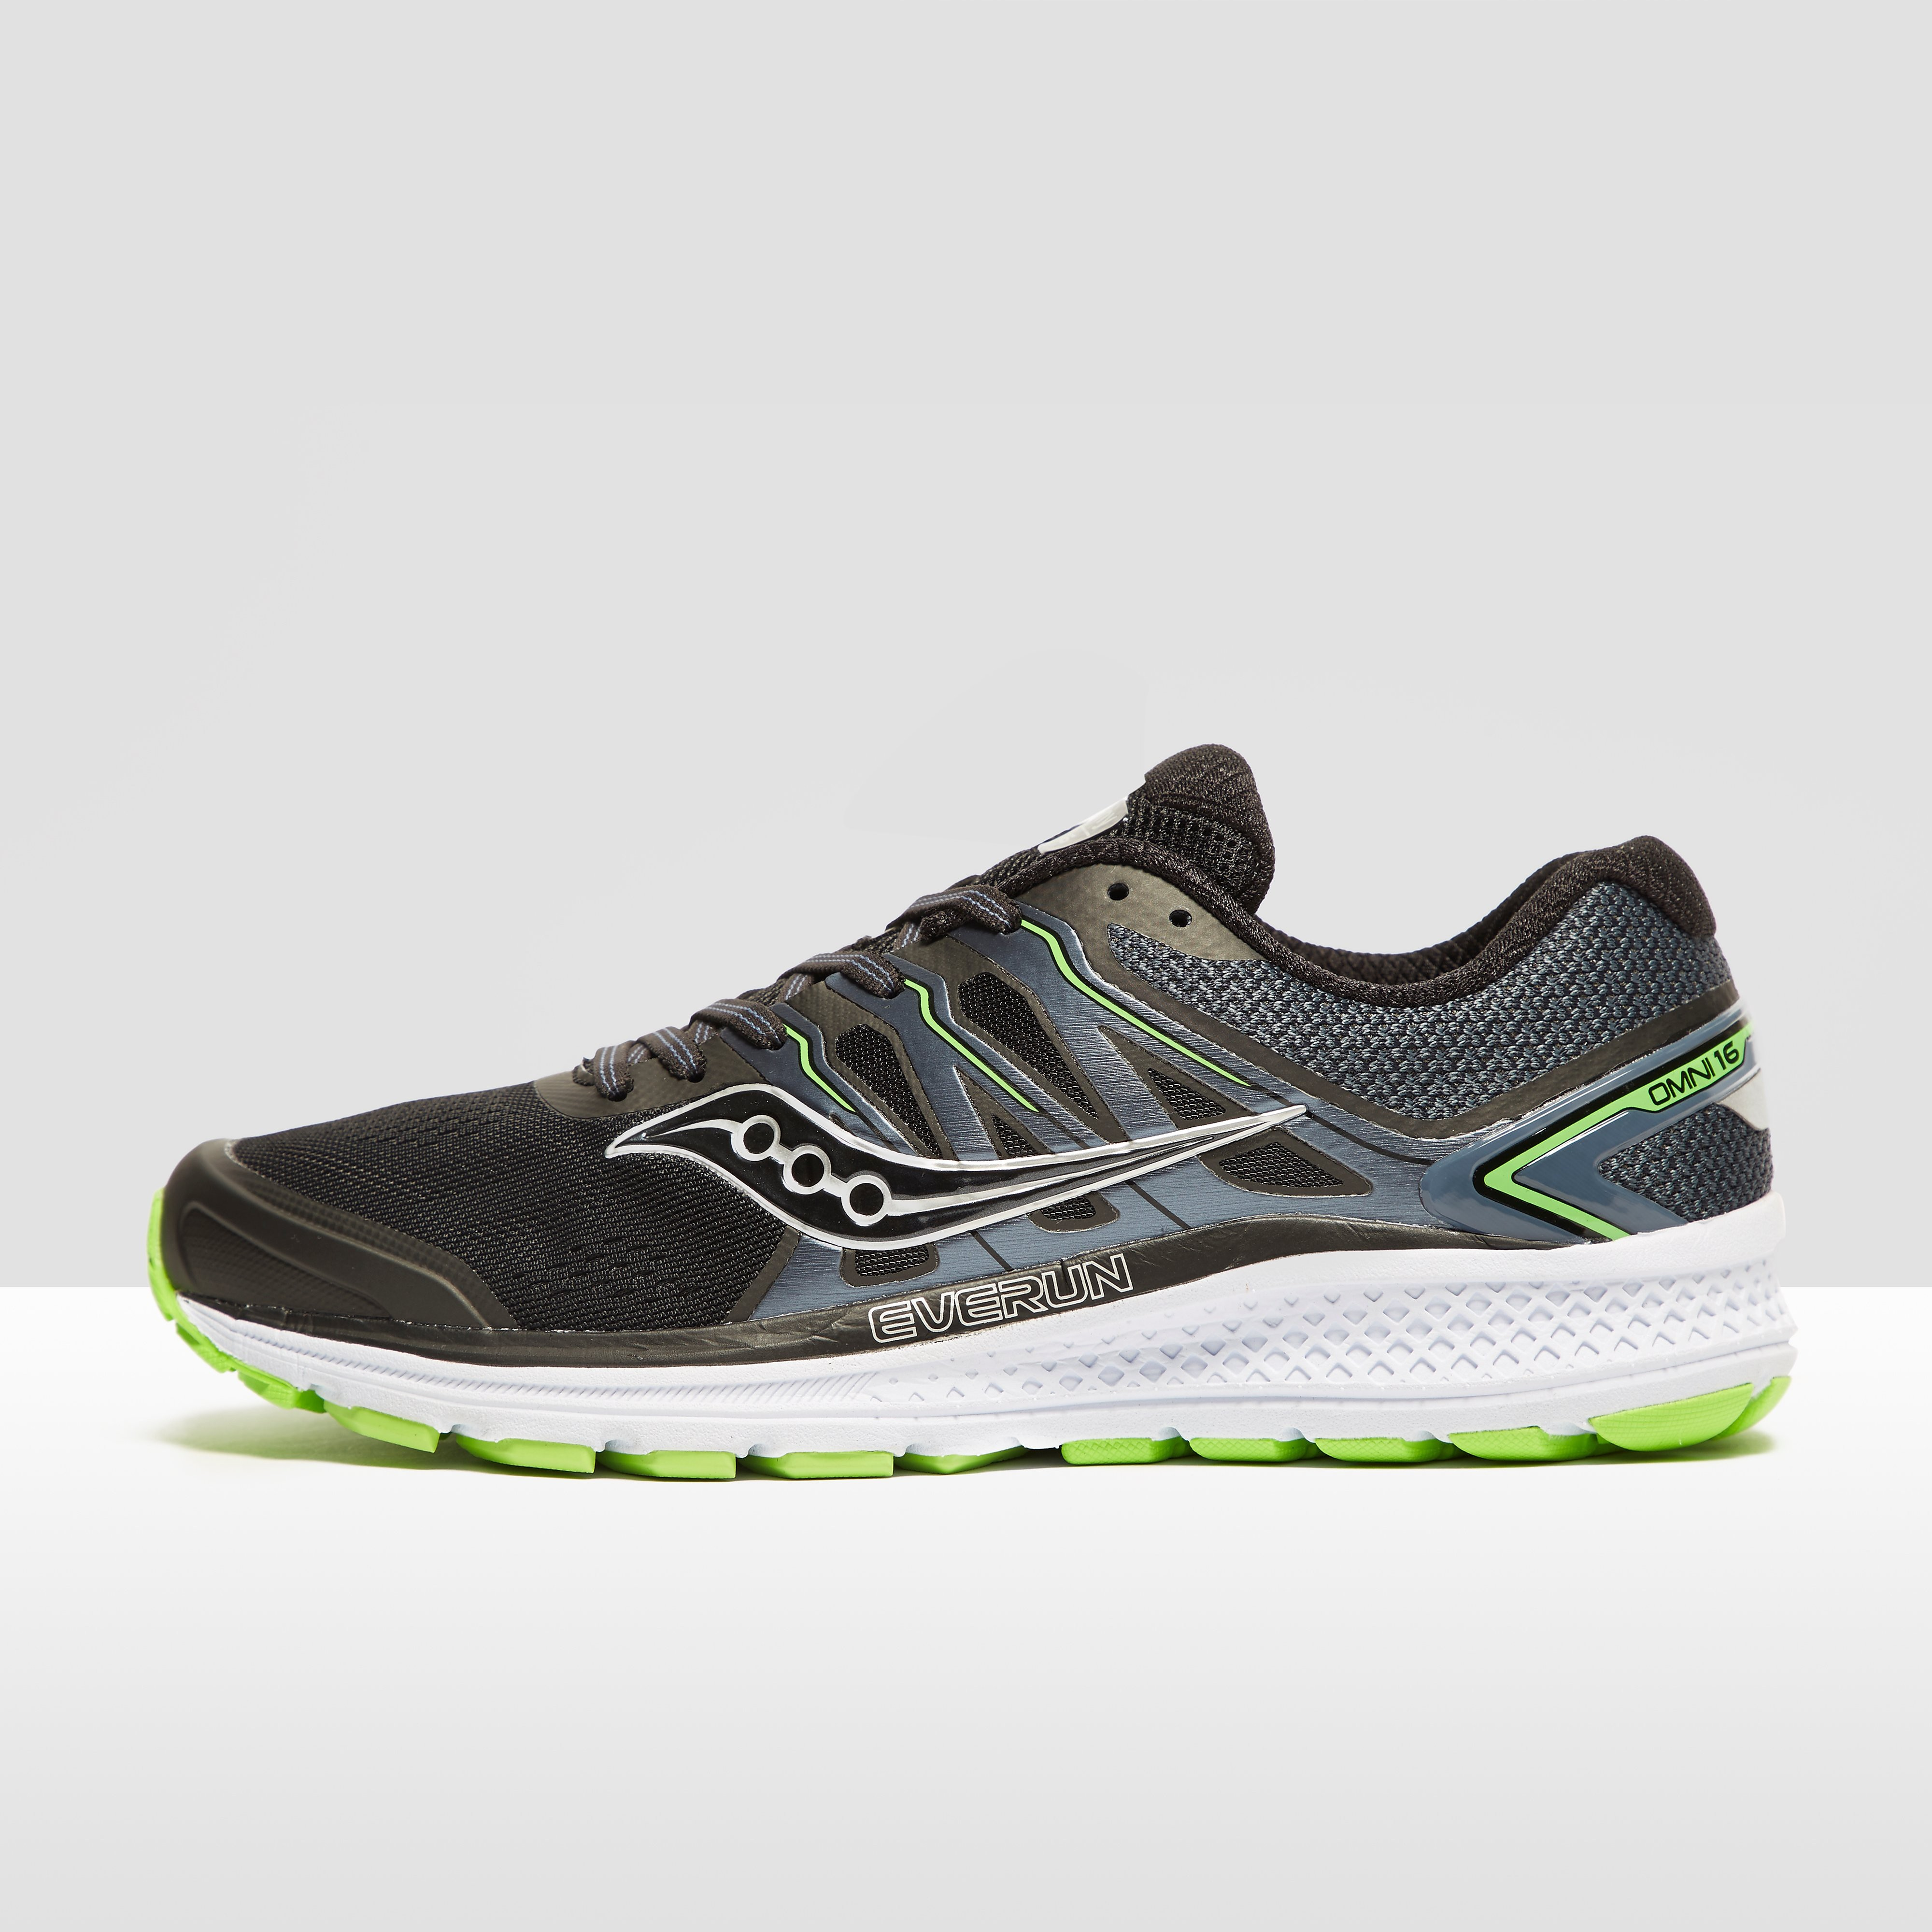 Saucony Omni 16 Men's Running Shoes